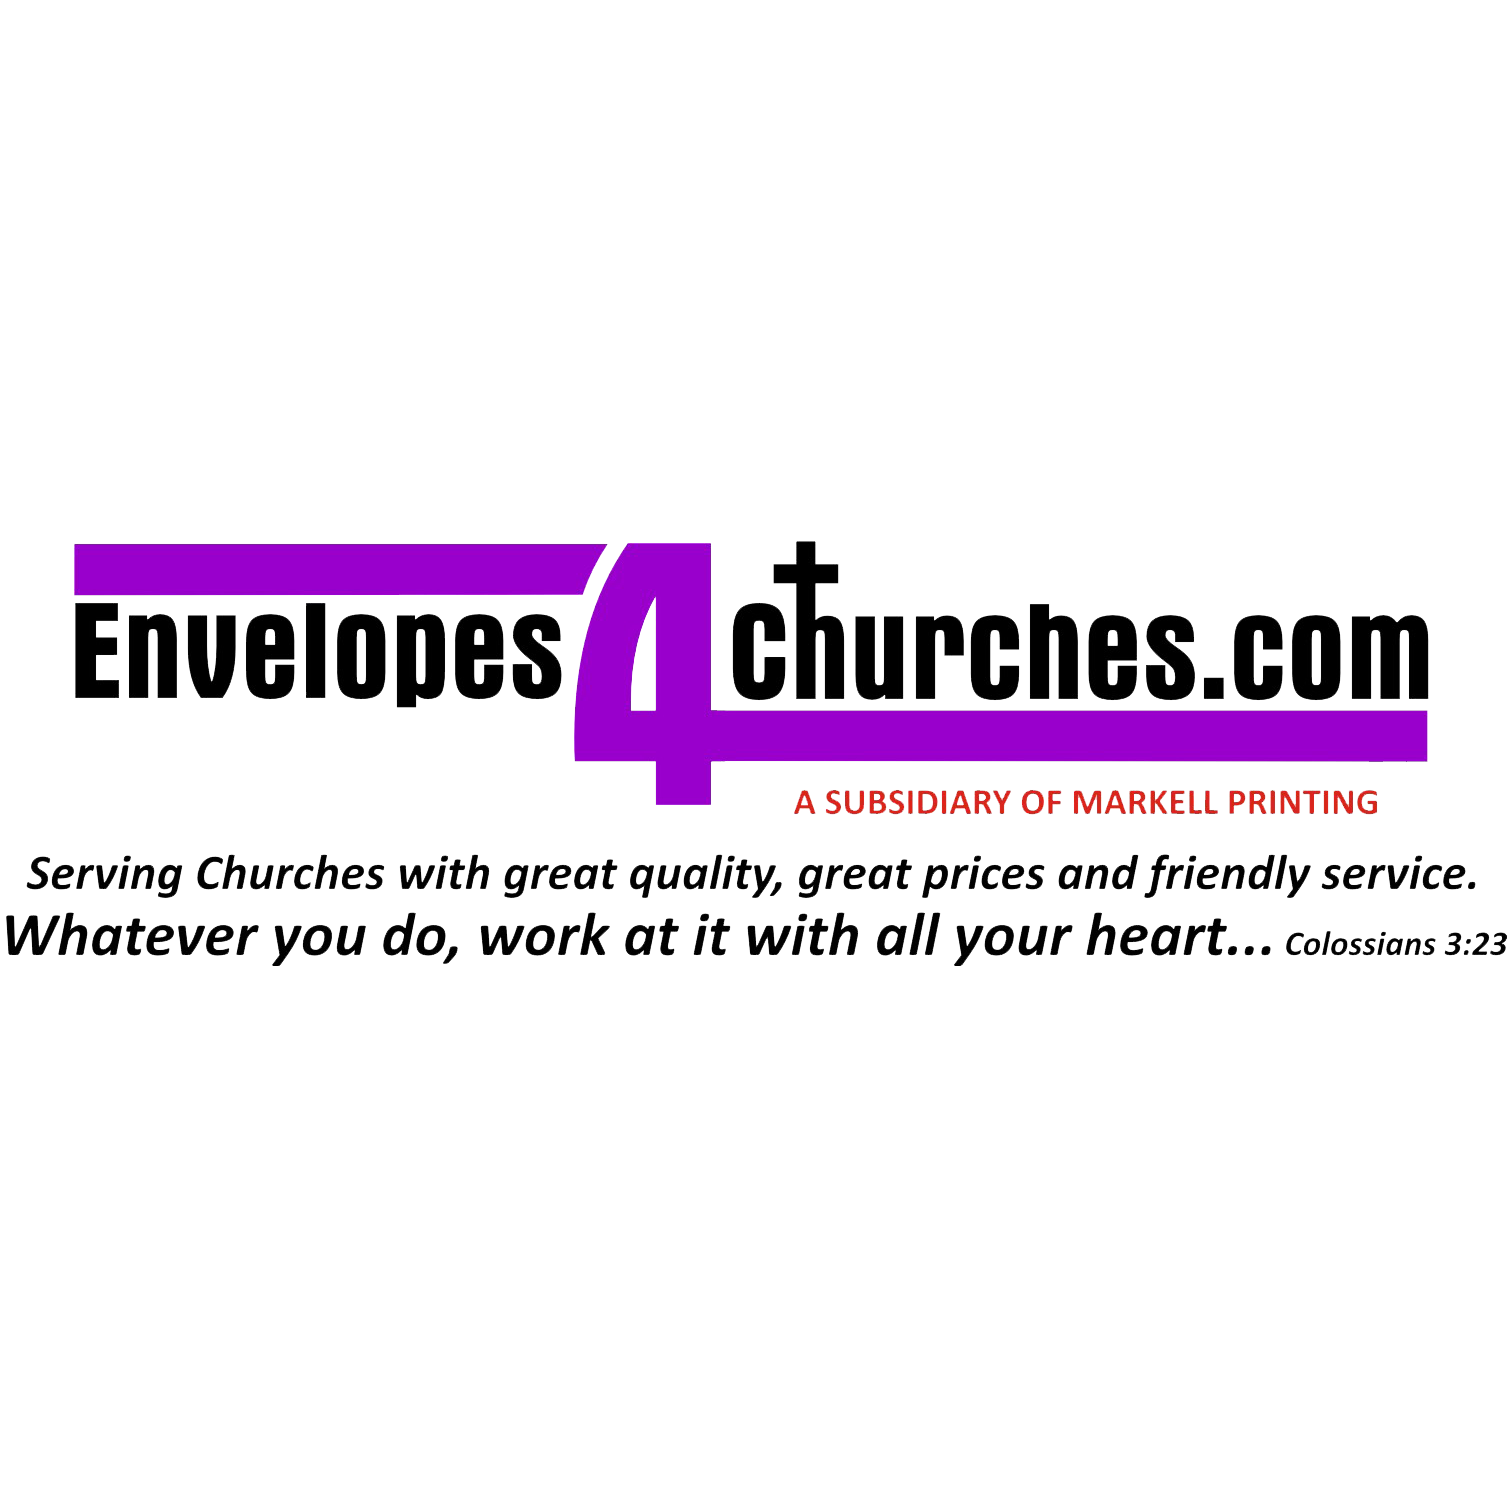 envelopes4churches